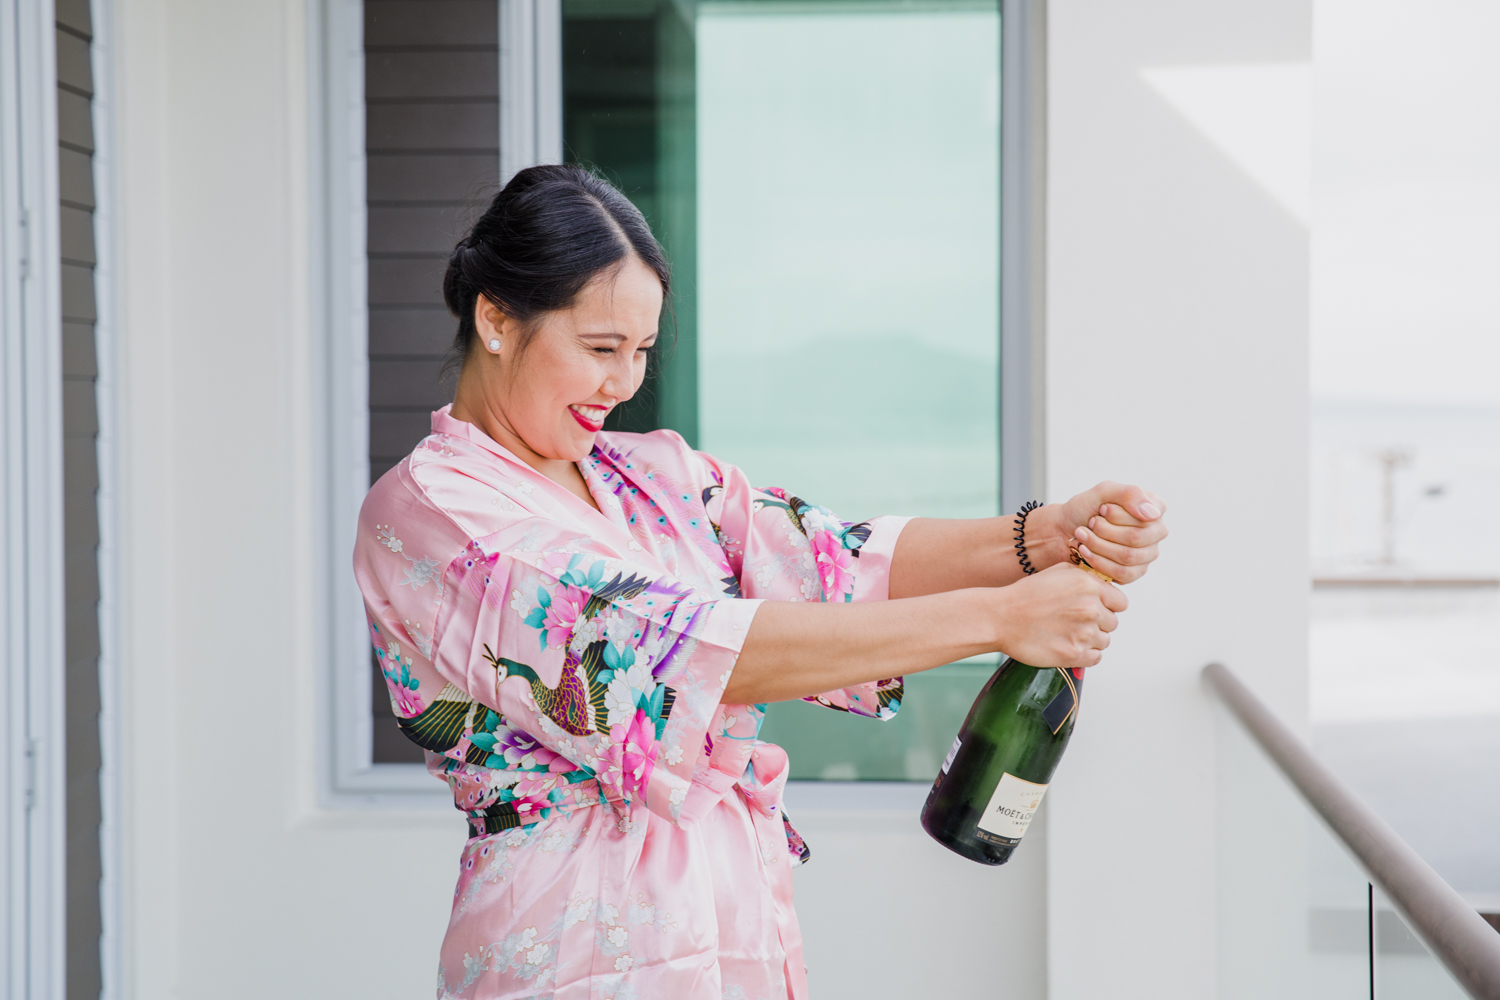 Bride's maid cracking open a bottle of bubbles. This image was taken by Mala Photography, an Auckland based wedding photographer. The wedding was at Markovina Vineyard Estate In Kumeu, Auckland.